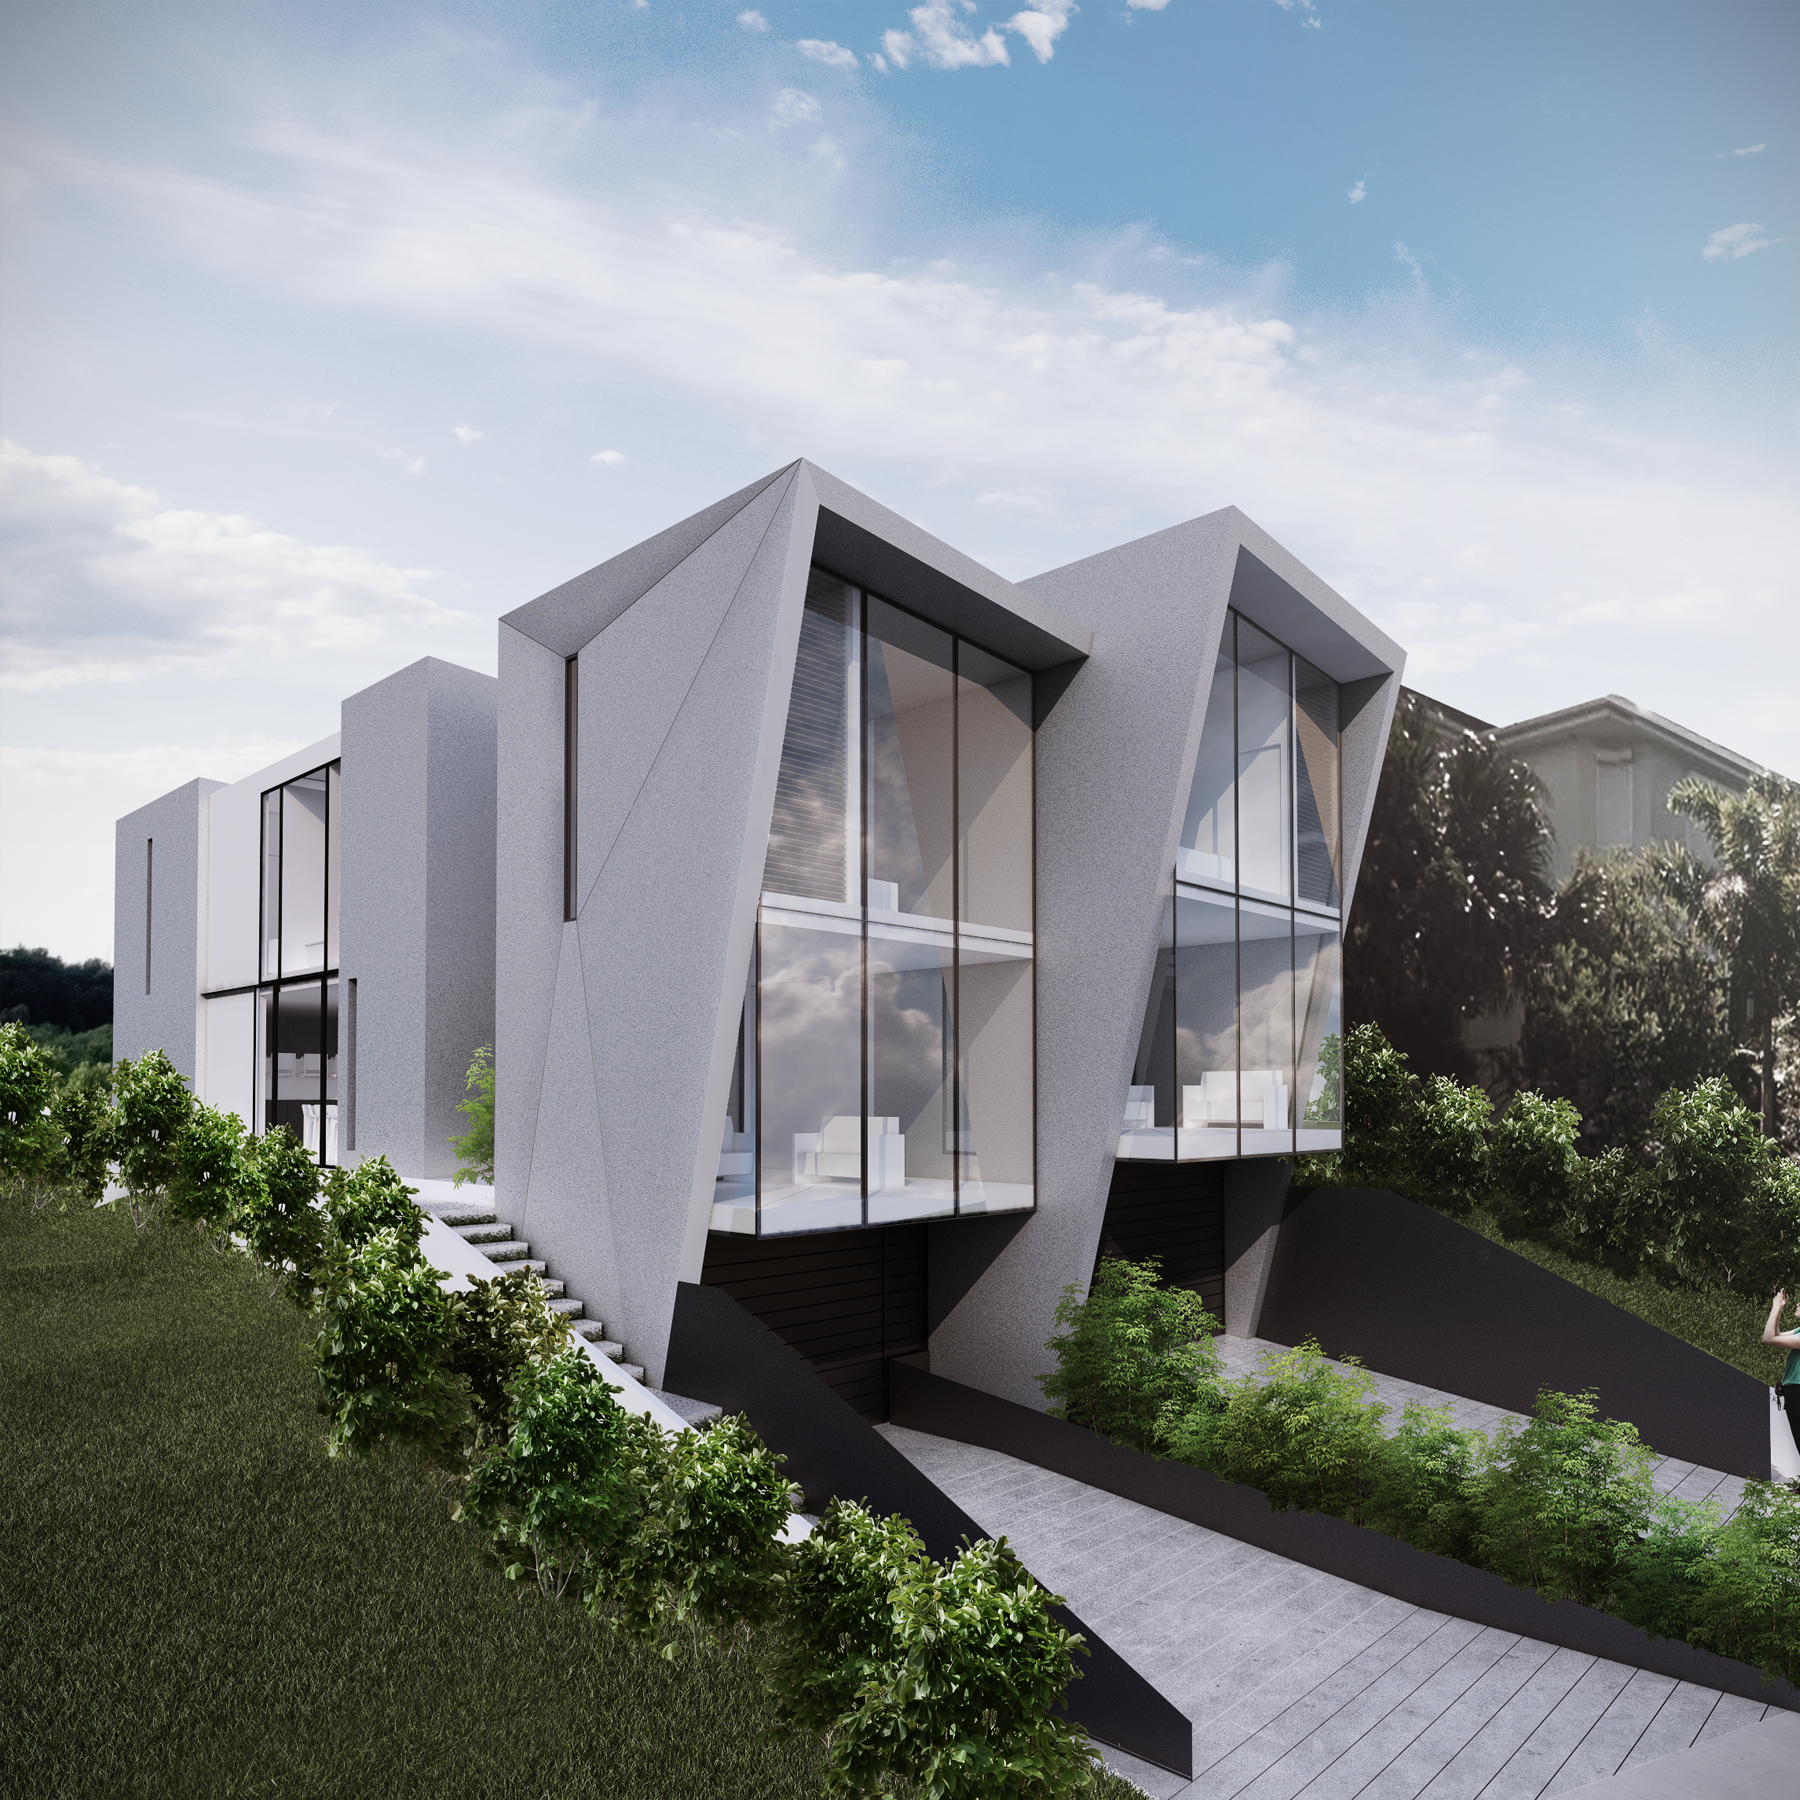 Modern Contemporaryhome Exterior Design: Those Who Live In Glass Houses Should Not Throw Stones